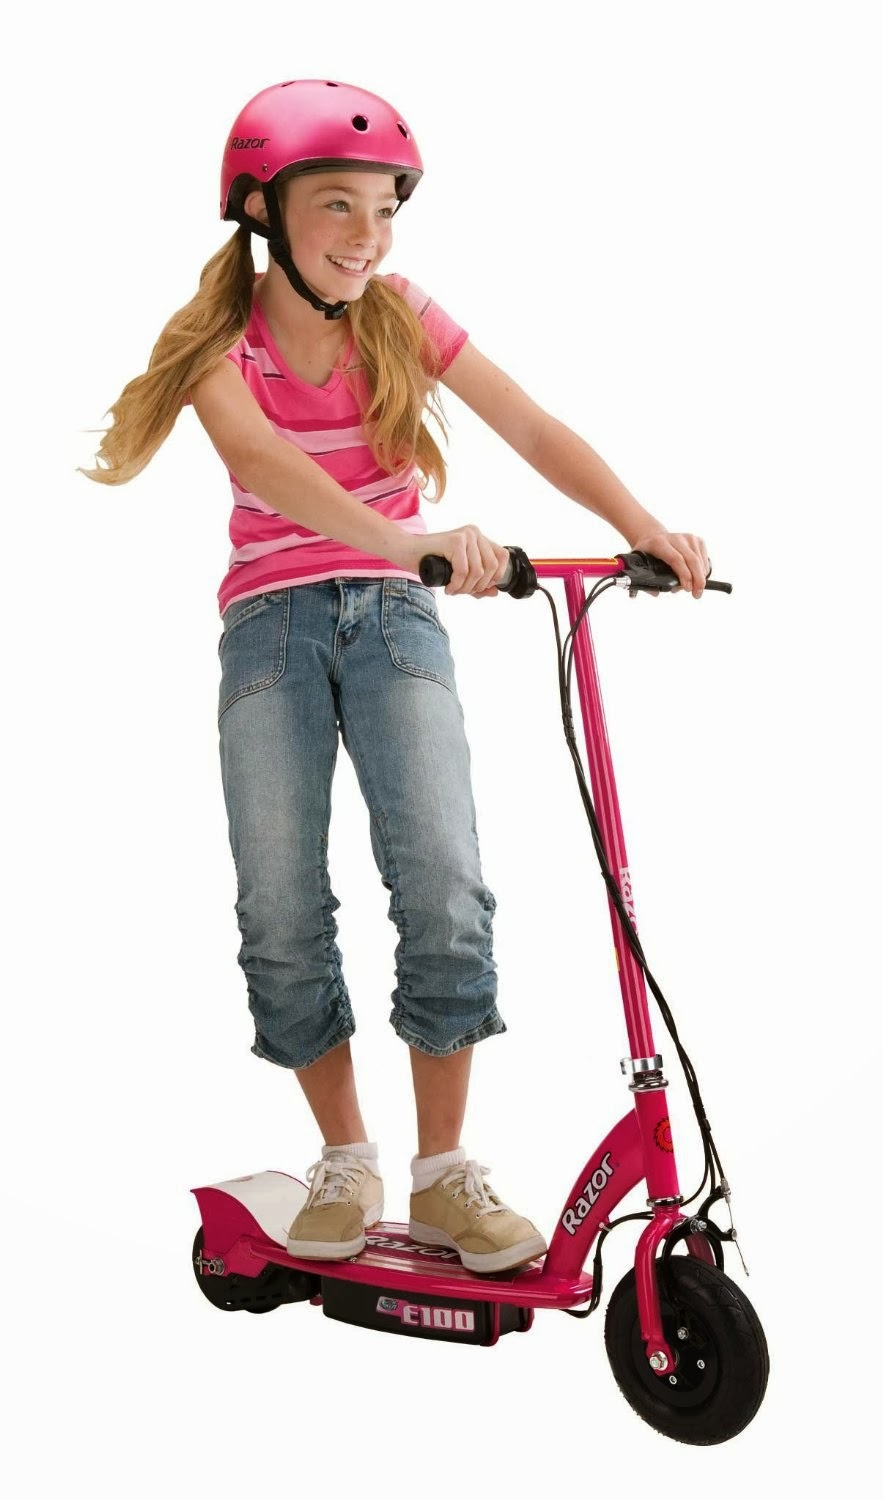 Cool Gifts for Girls of All Ages : Present Ideas for Girls ...